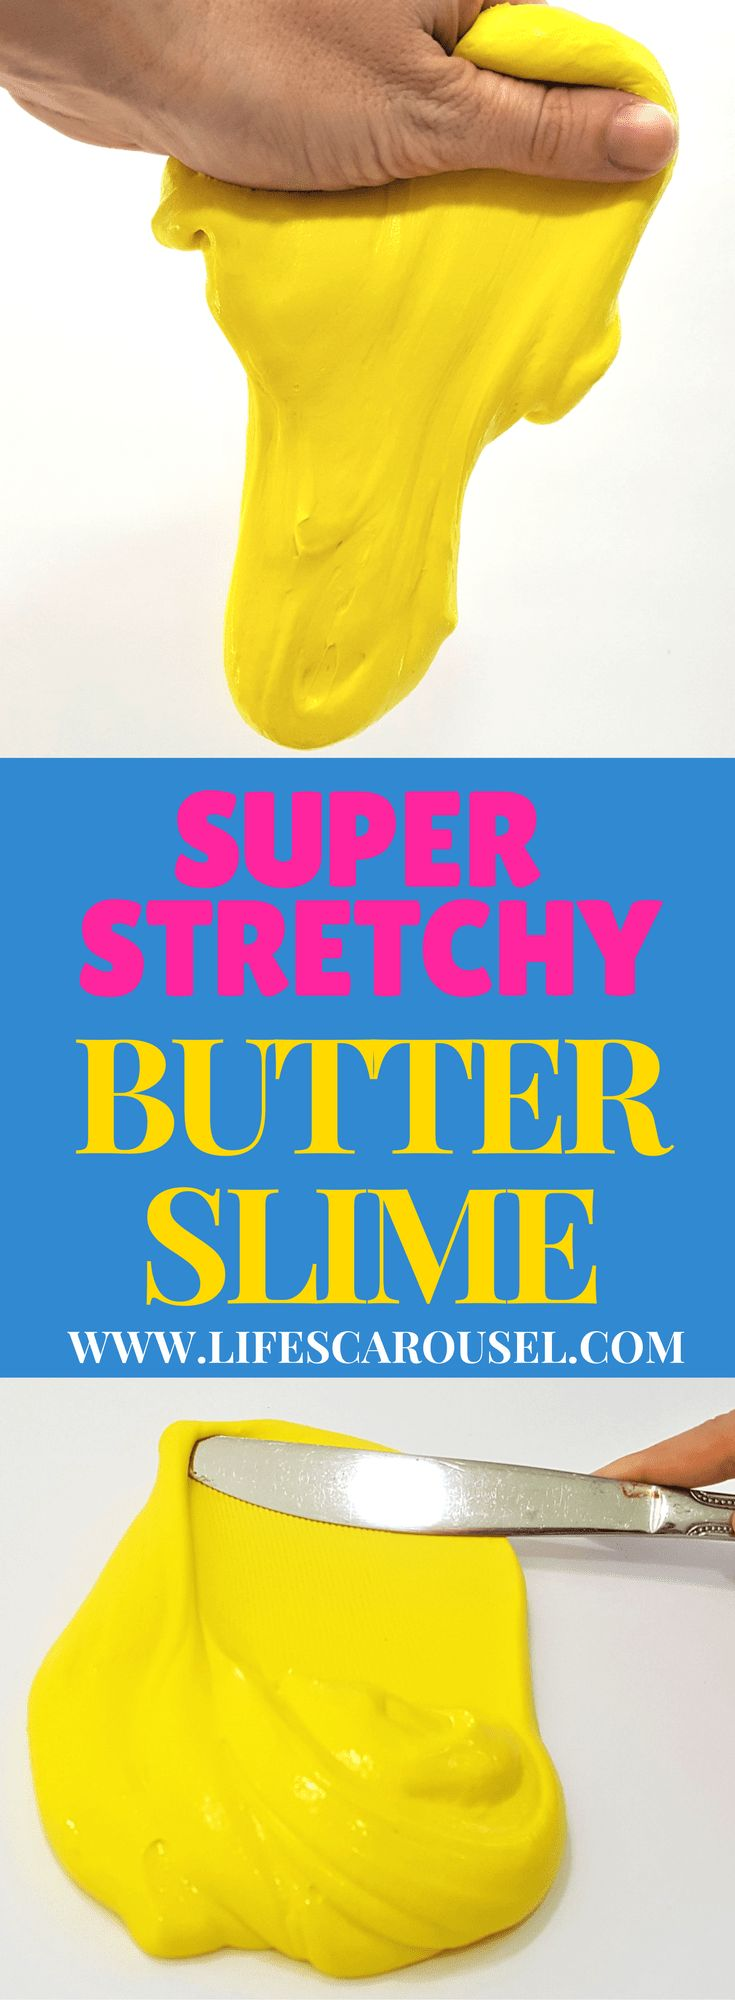 BUTTER SLIME | Super Smooth & Stretchy Butter Slime. This is the softest, smoothest and stretchiest slime EVER! Easy to make, no mess slime! Great kids craft or activity that everyone will enjoy! Perfect for birthday parties, classroom activity, STEM project and more!